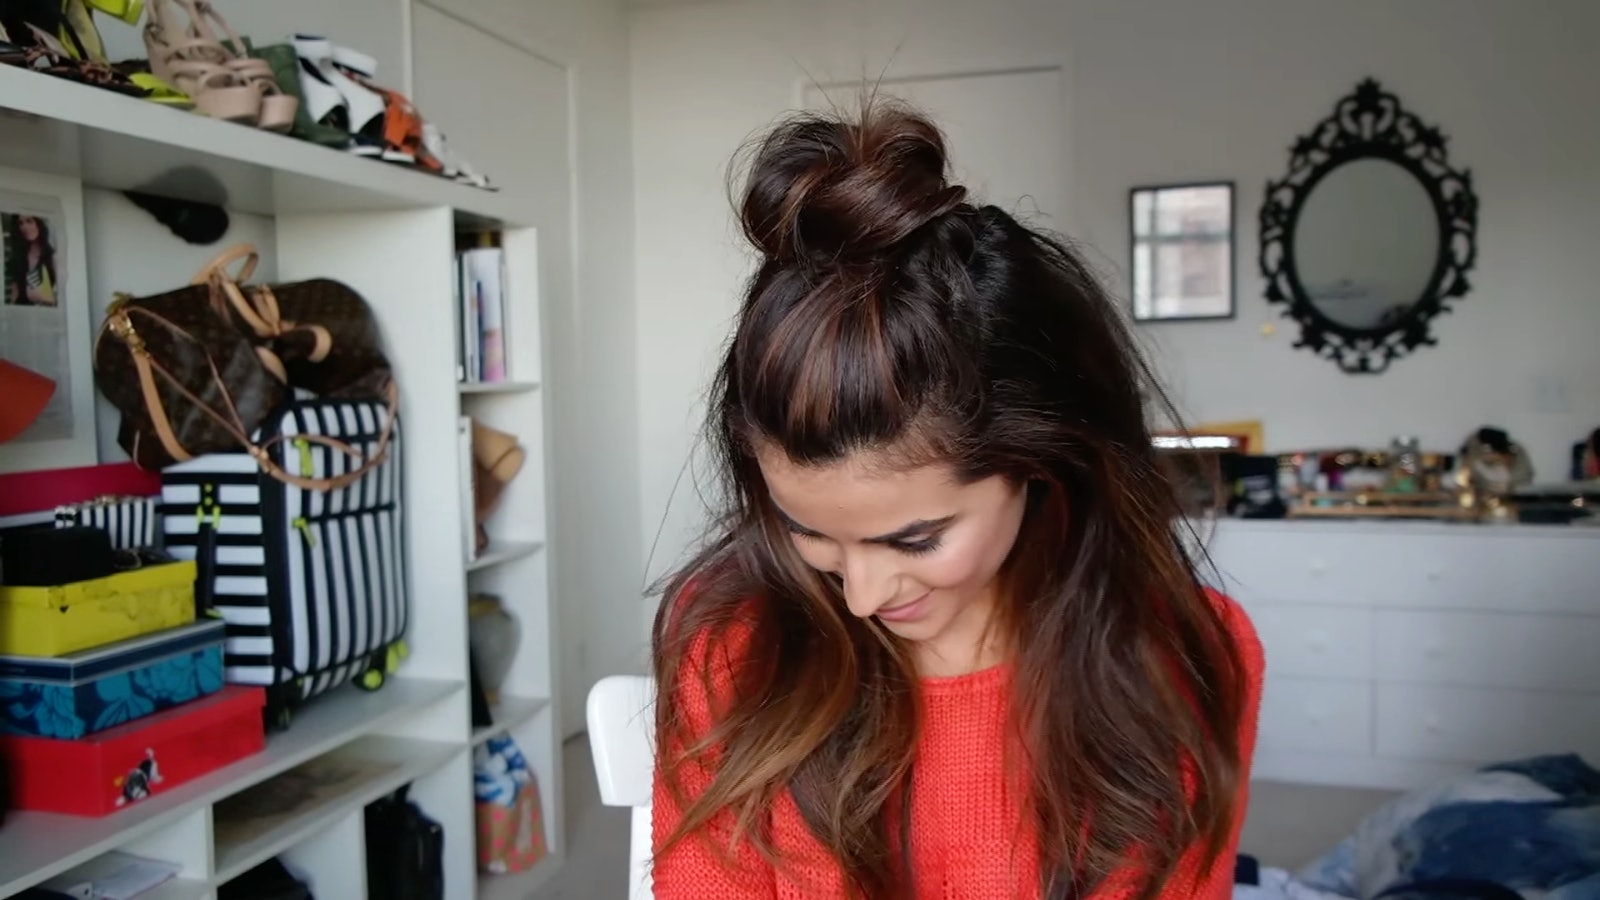 Watch - How to your wear hair without bangs video